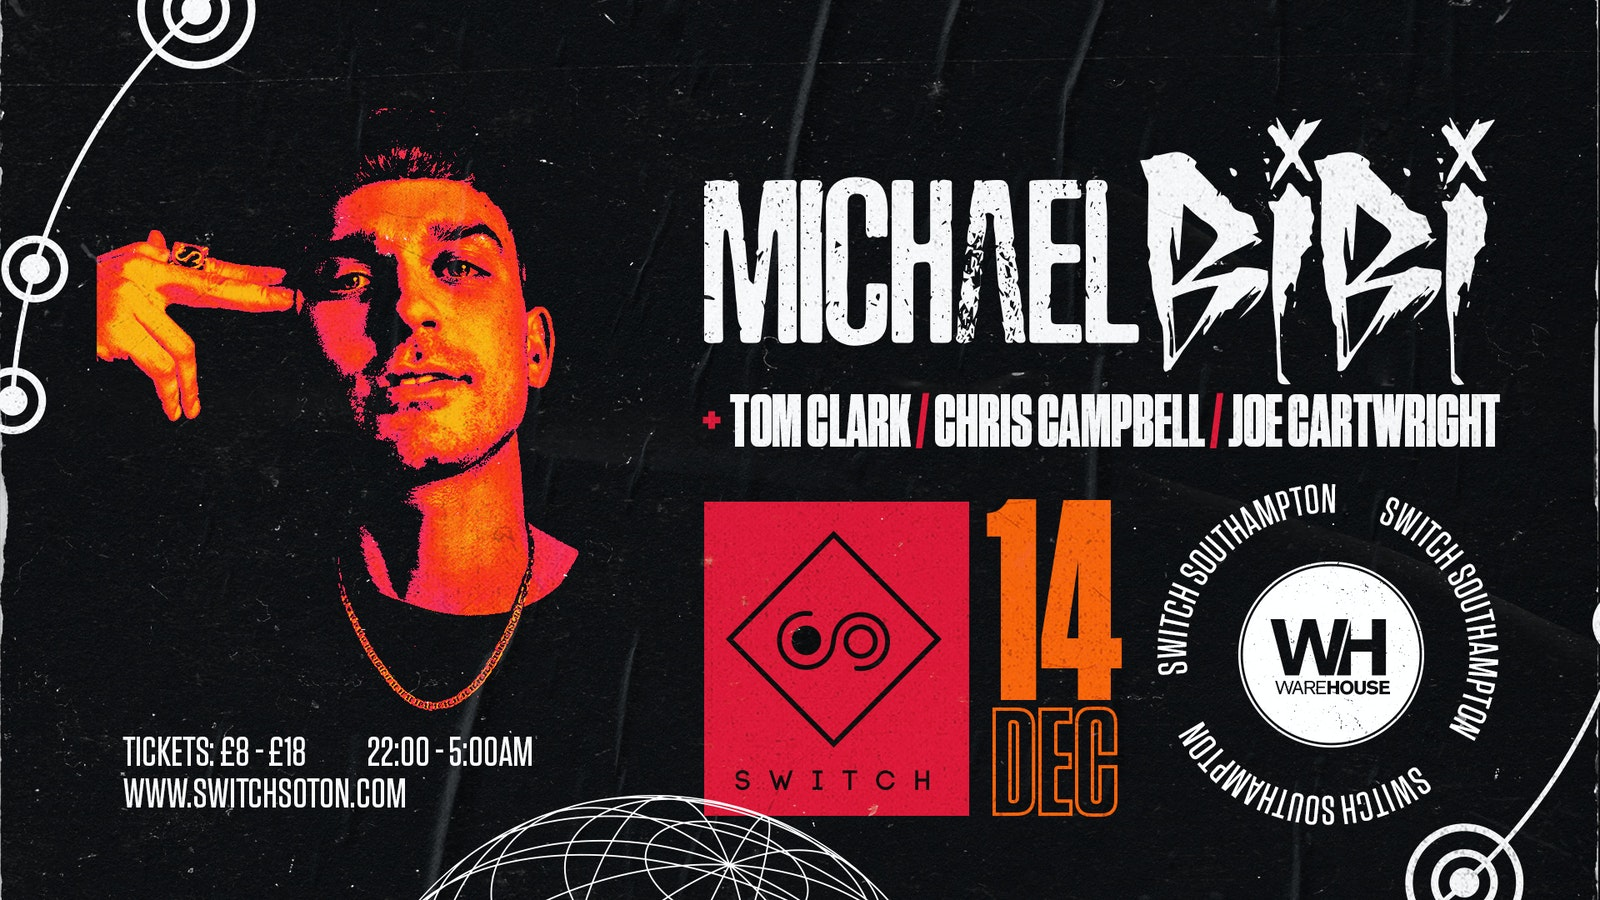 Warehouse Presents: Michael Bibi